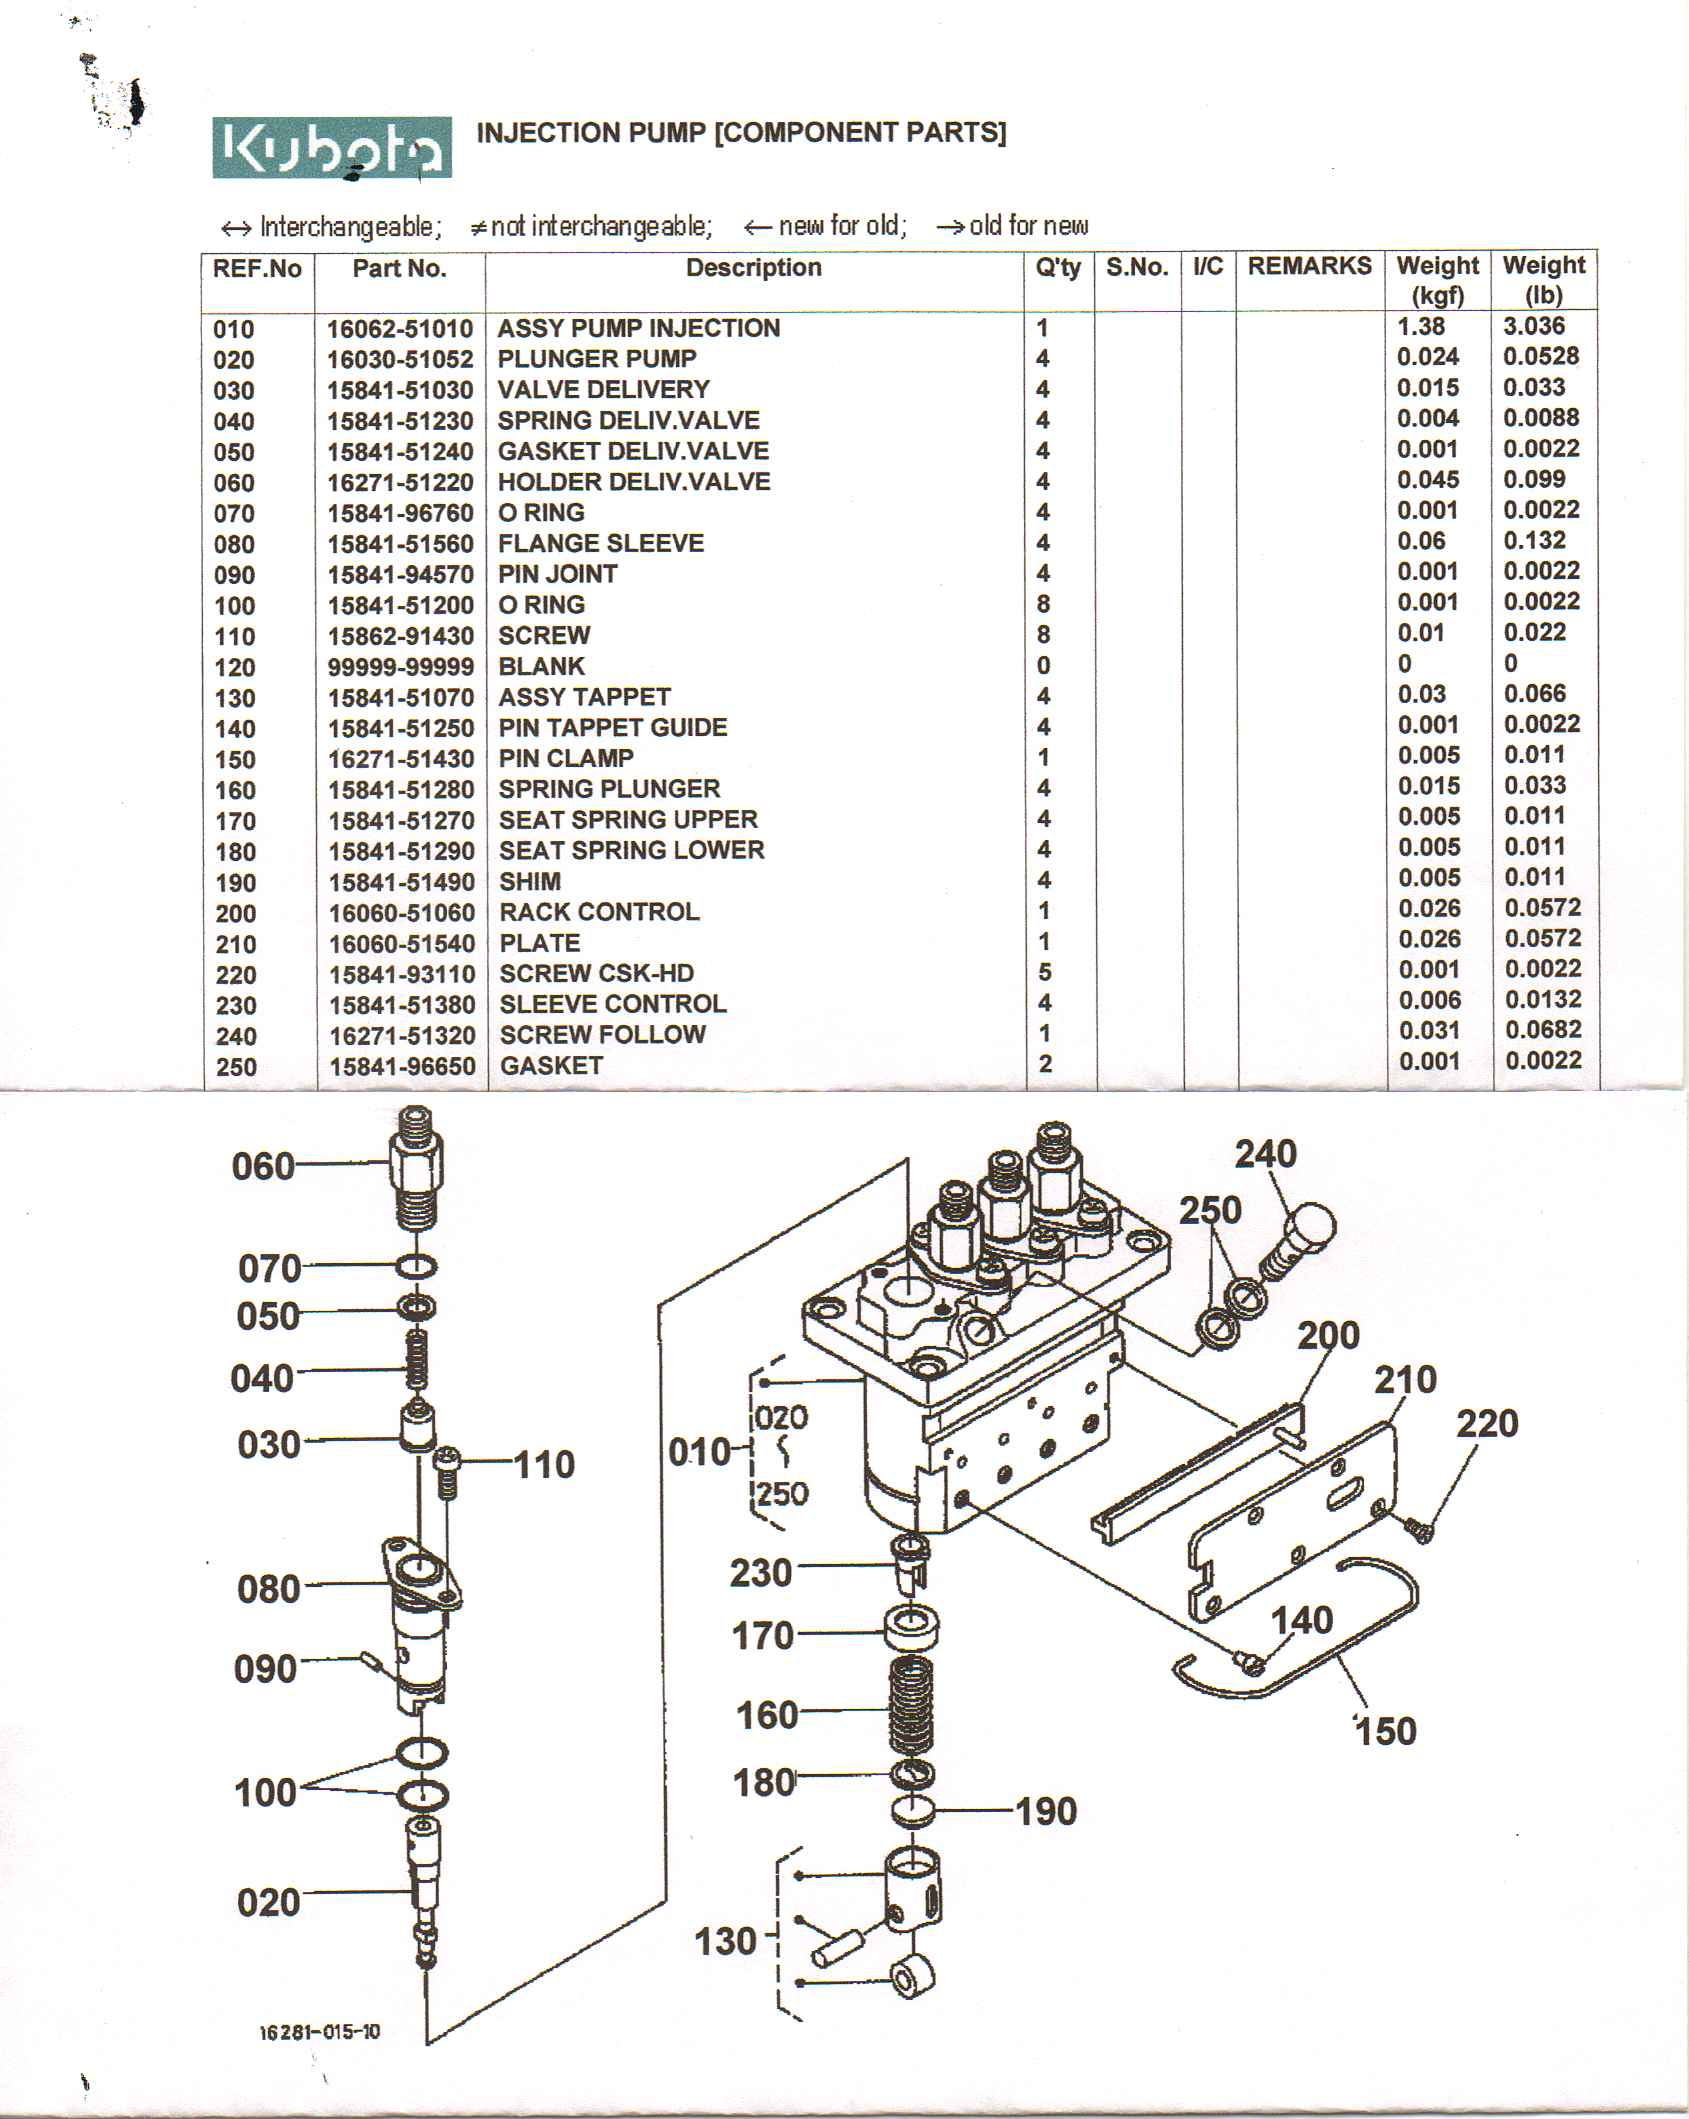 480 volt pump wiring diagram with Wiring Diagram For Bx2200 Kubota on 460 220 Volt Wiring Diagram moreover Caterpillar C15 Engine Wiring Diagram moreover High Voltage Motor Wiring Diagram further Mercathode Wiring Diagram likewise Wiring A 3 Phase 220 Volt Motor.